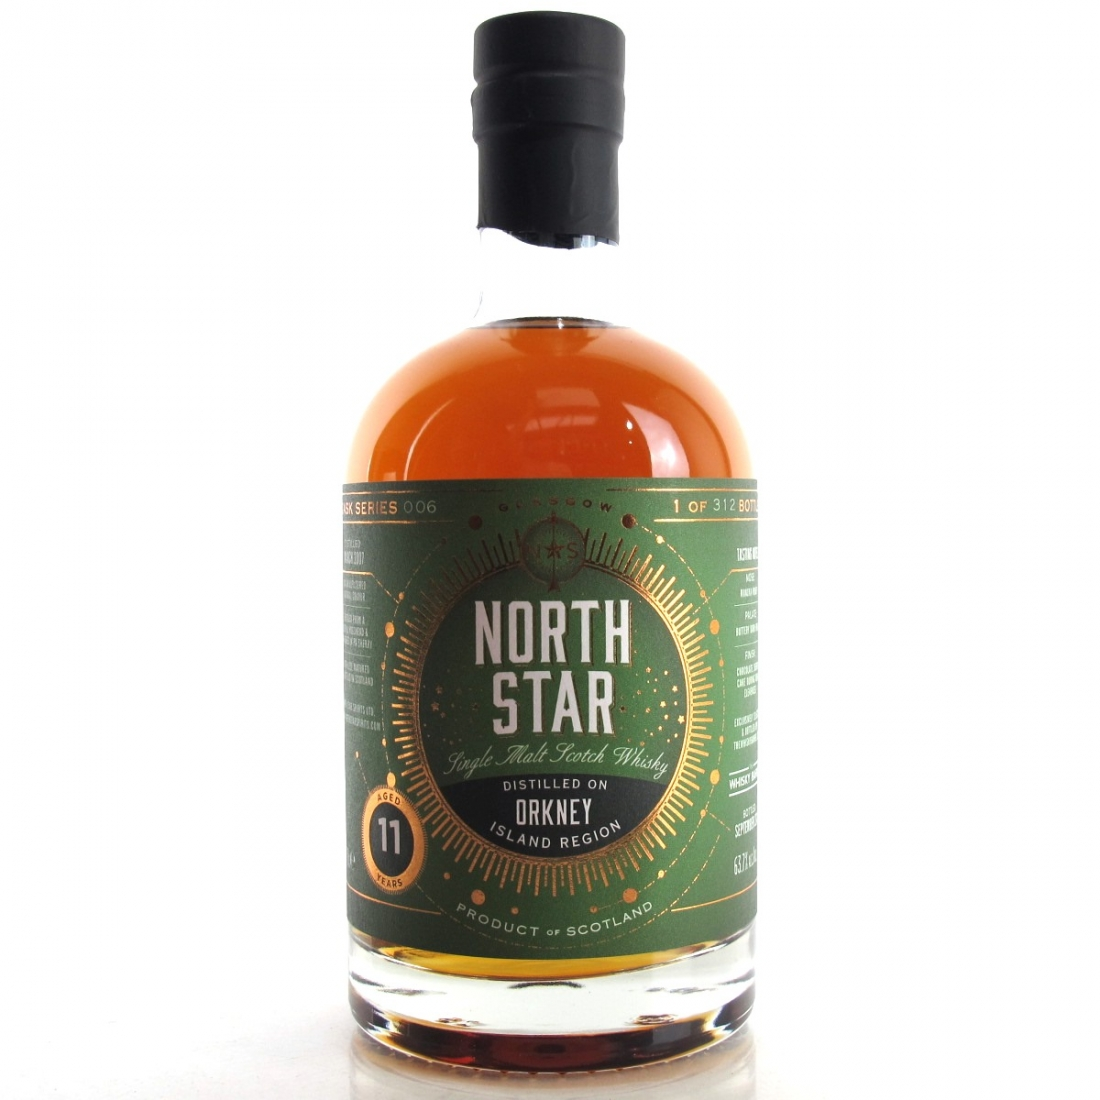 Orkney Single Malt 2007 North Star 11 Year Old / The Whisky Barrel